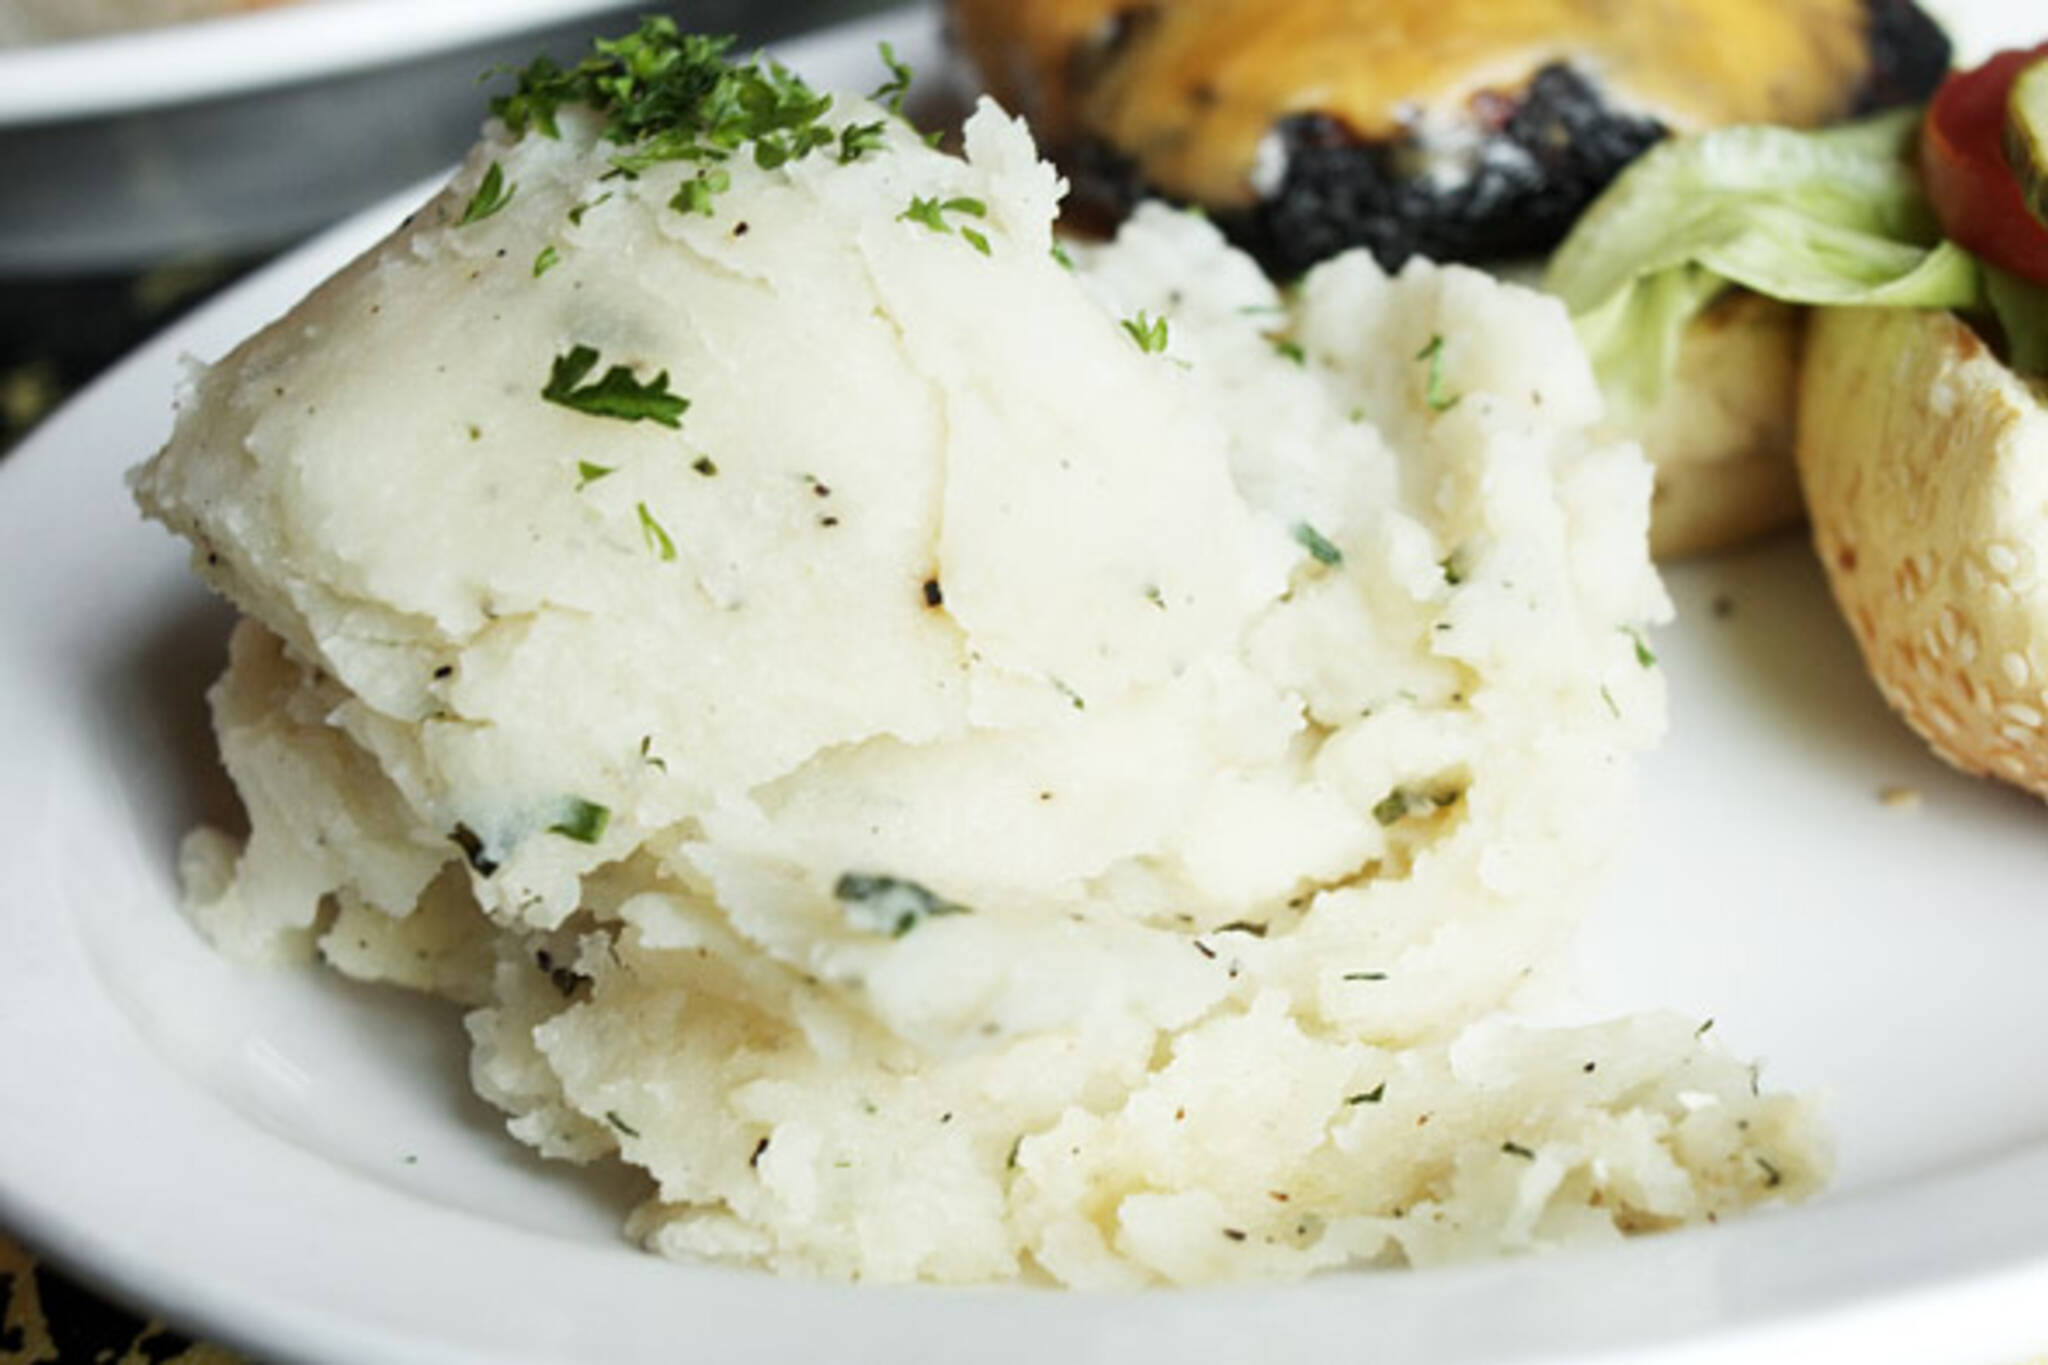 Mashed Potatoes at Victory Cafe